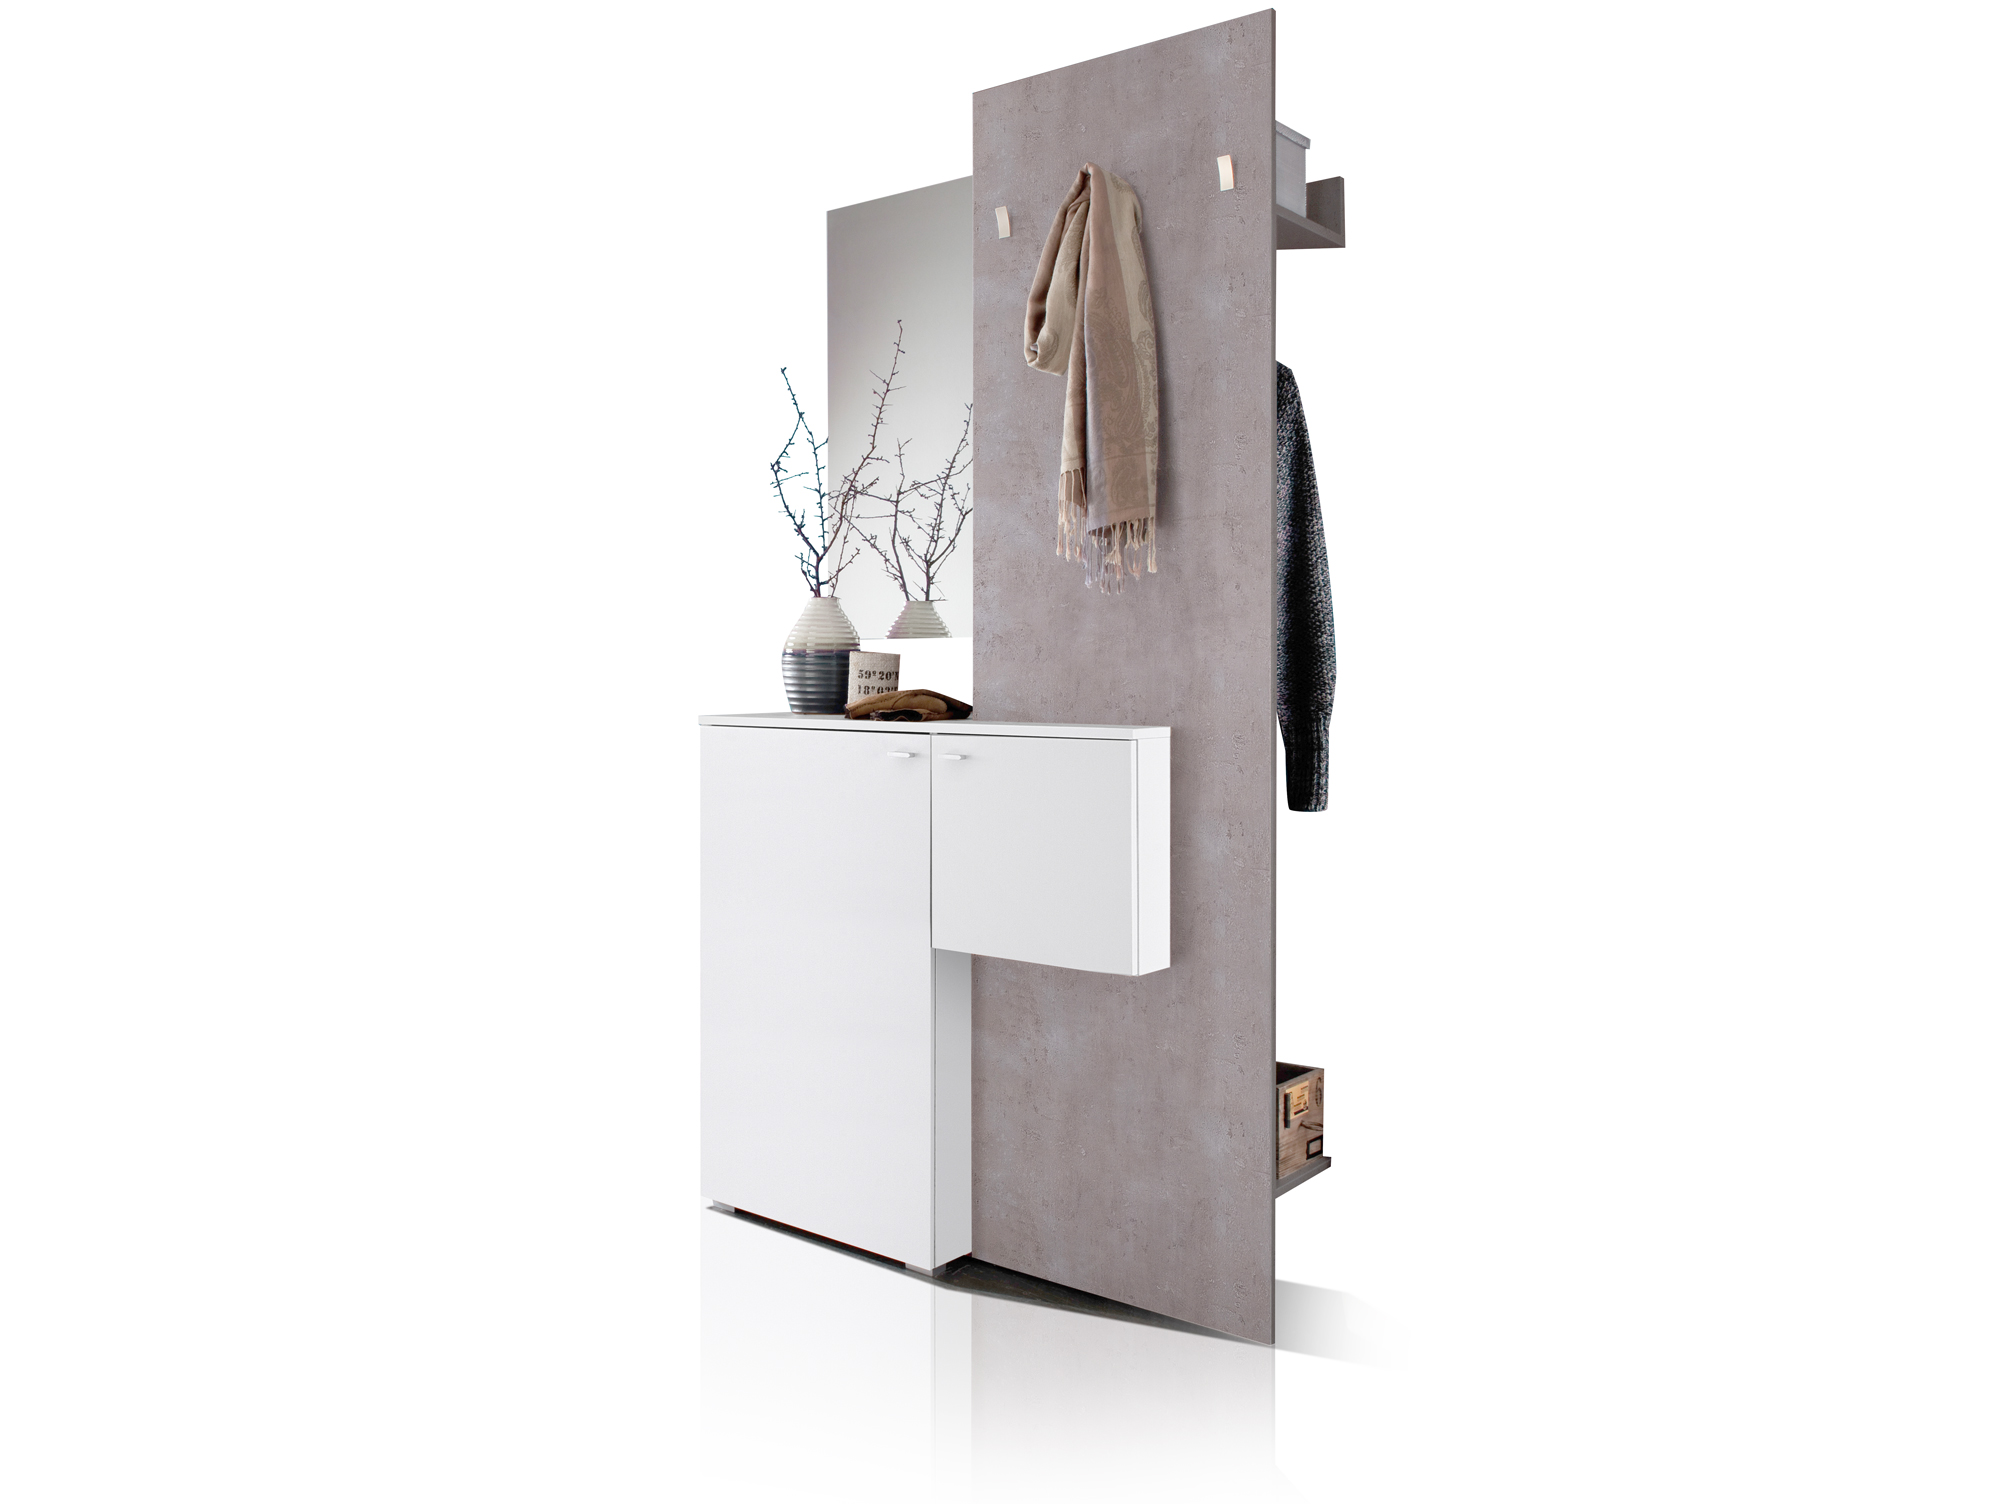 zarah komplett garderobe weiss betongrau. Black Bedroom Furniture Sets. Home Design Ideas